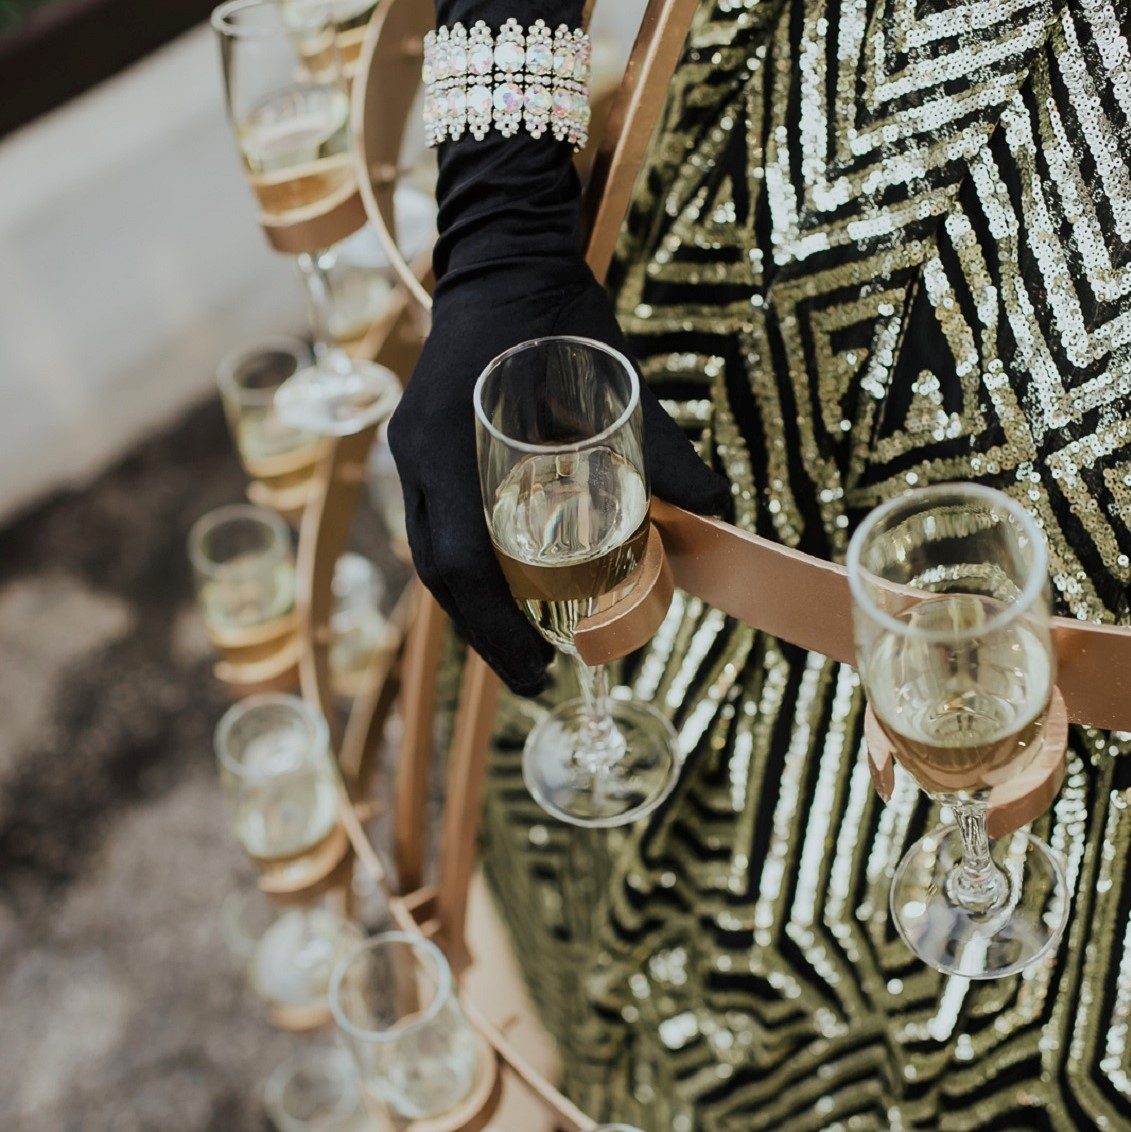 Champagne diva handing guests a glass as they arrive.